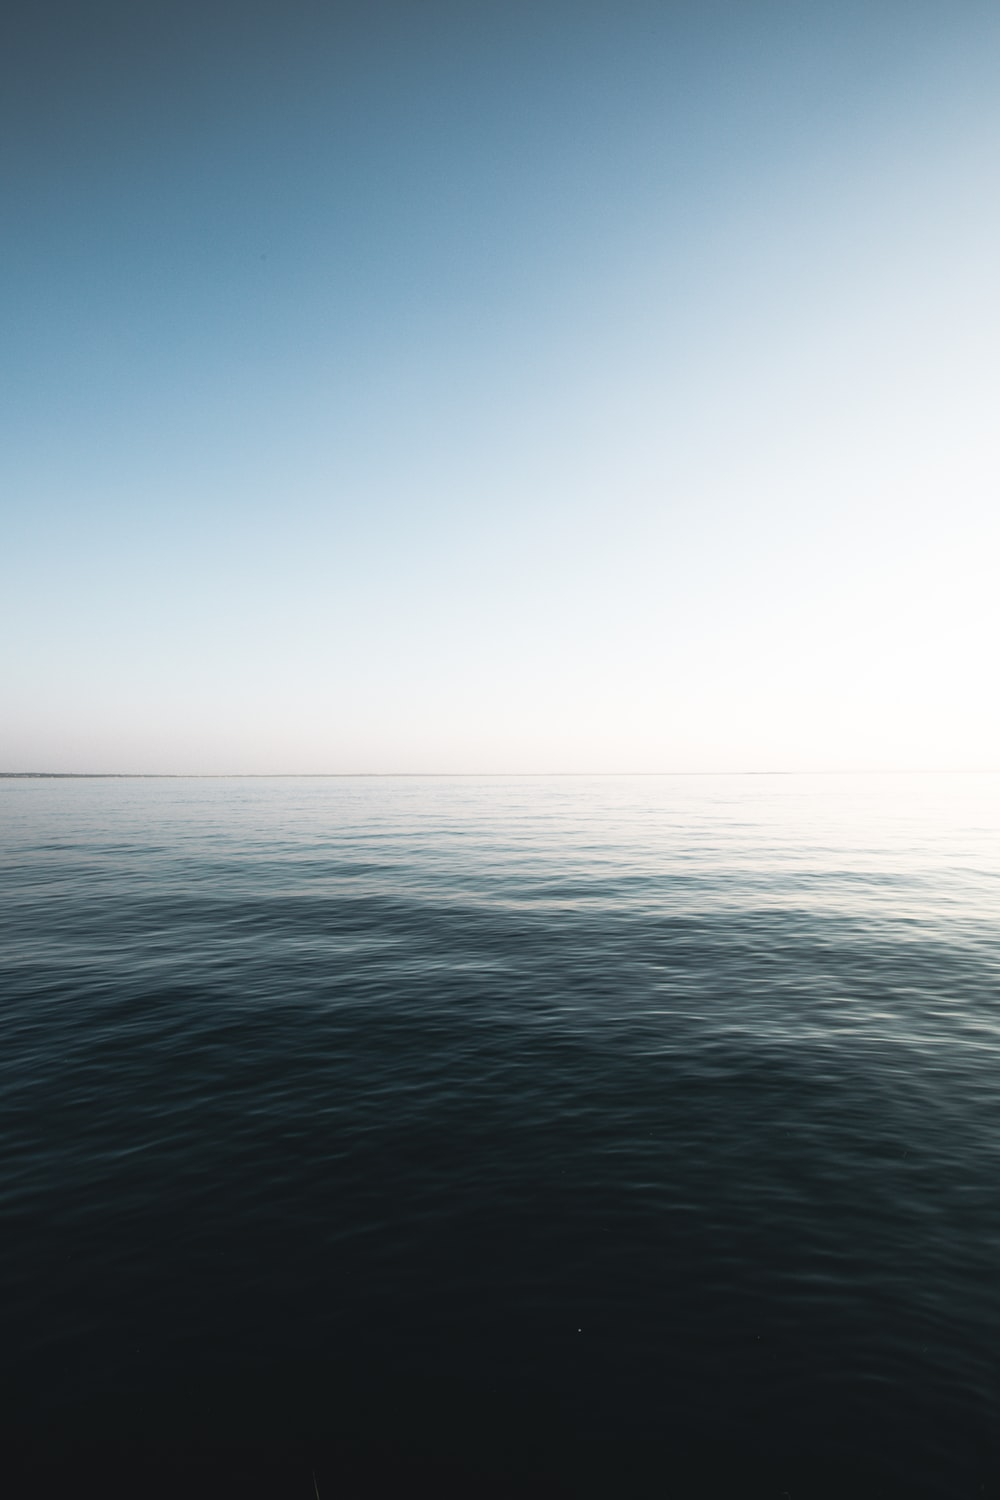 calm body of water at daytime